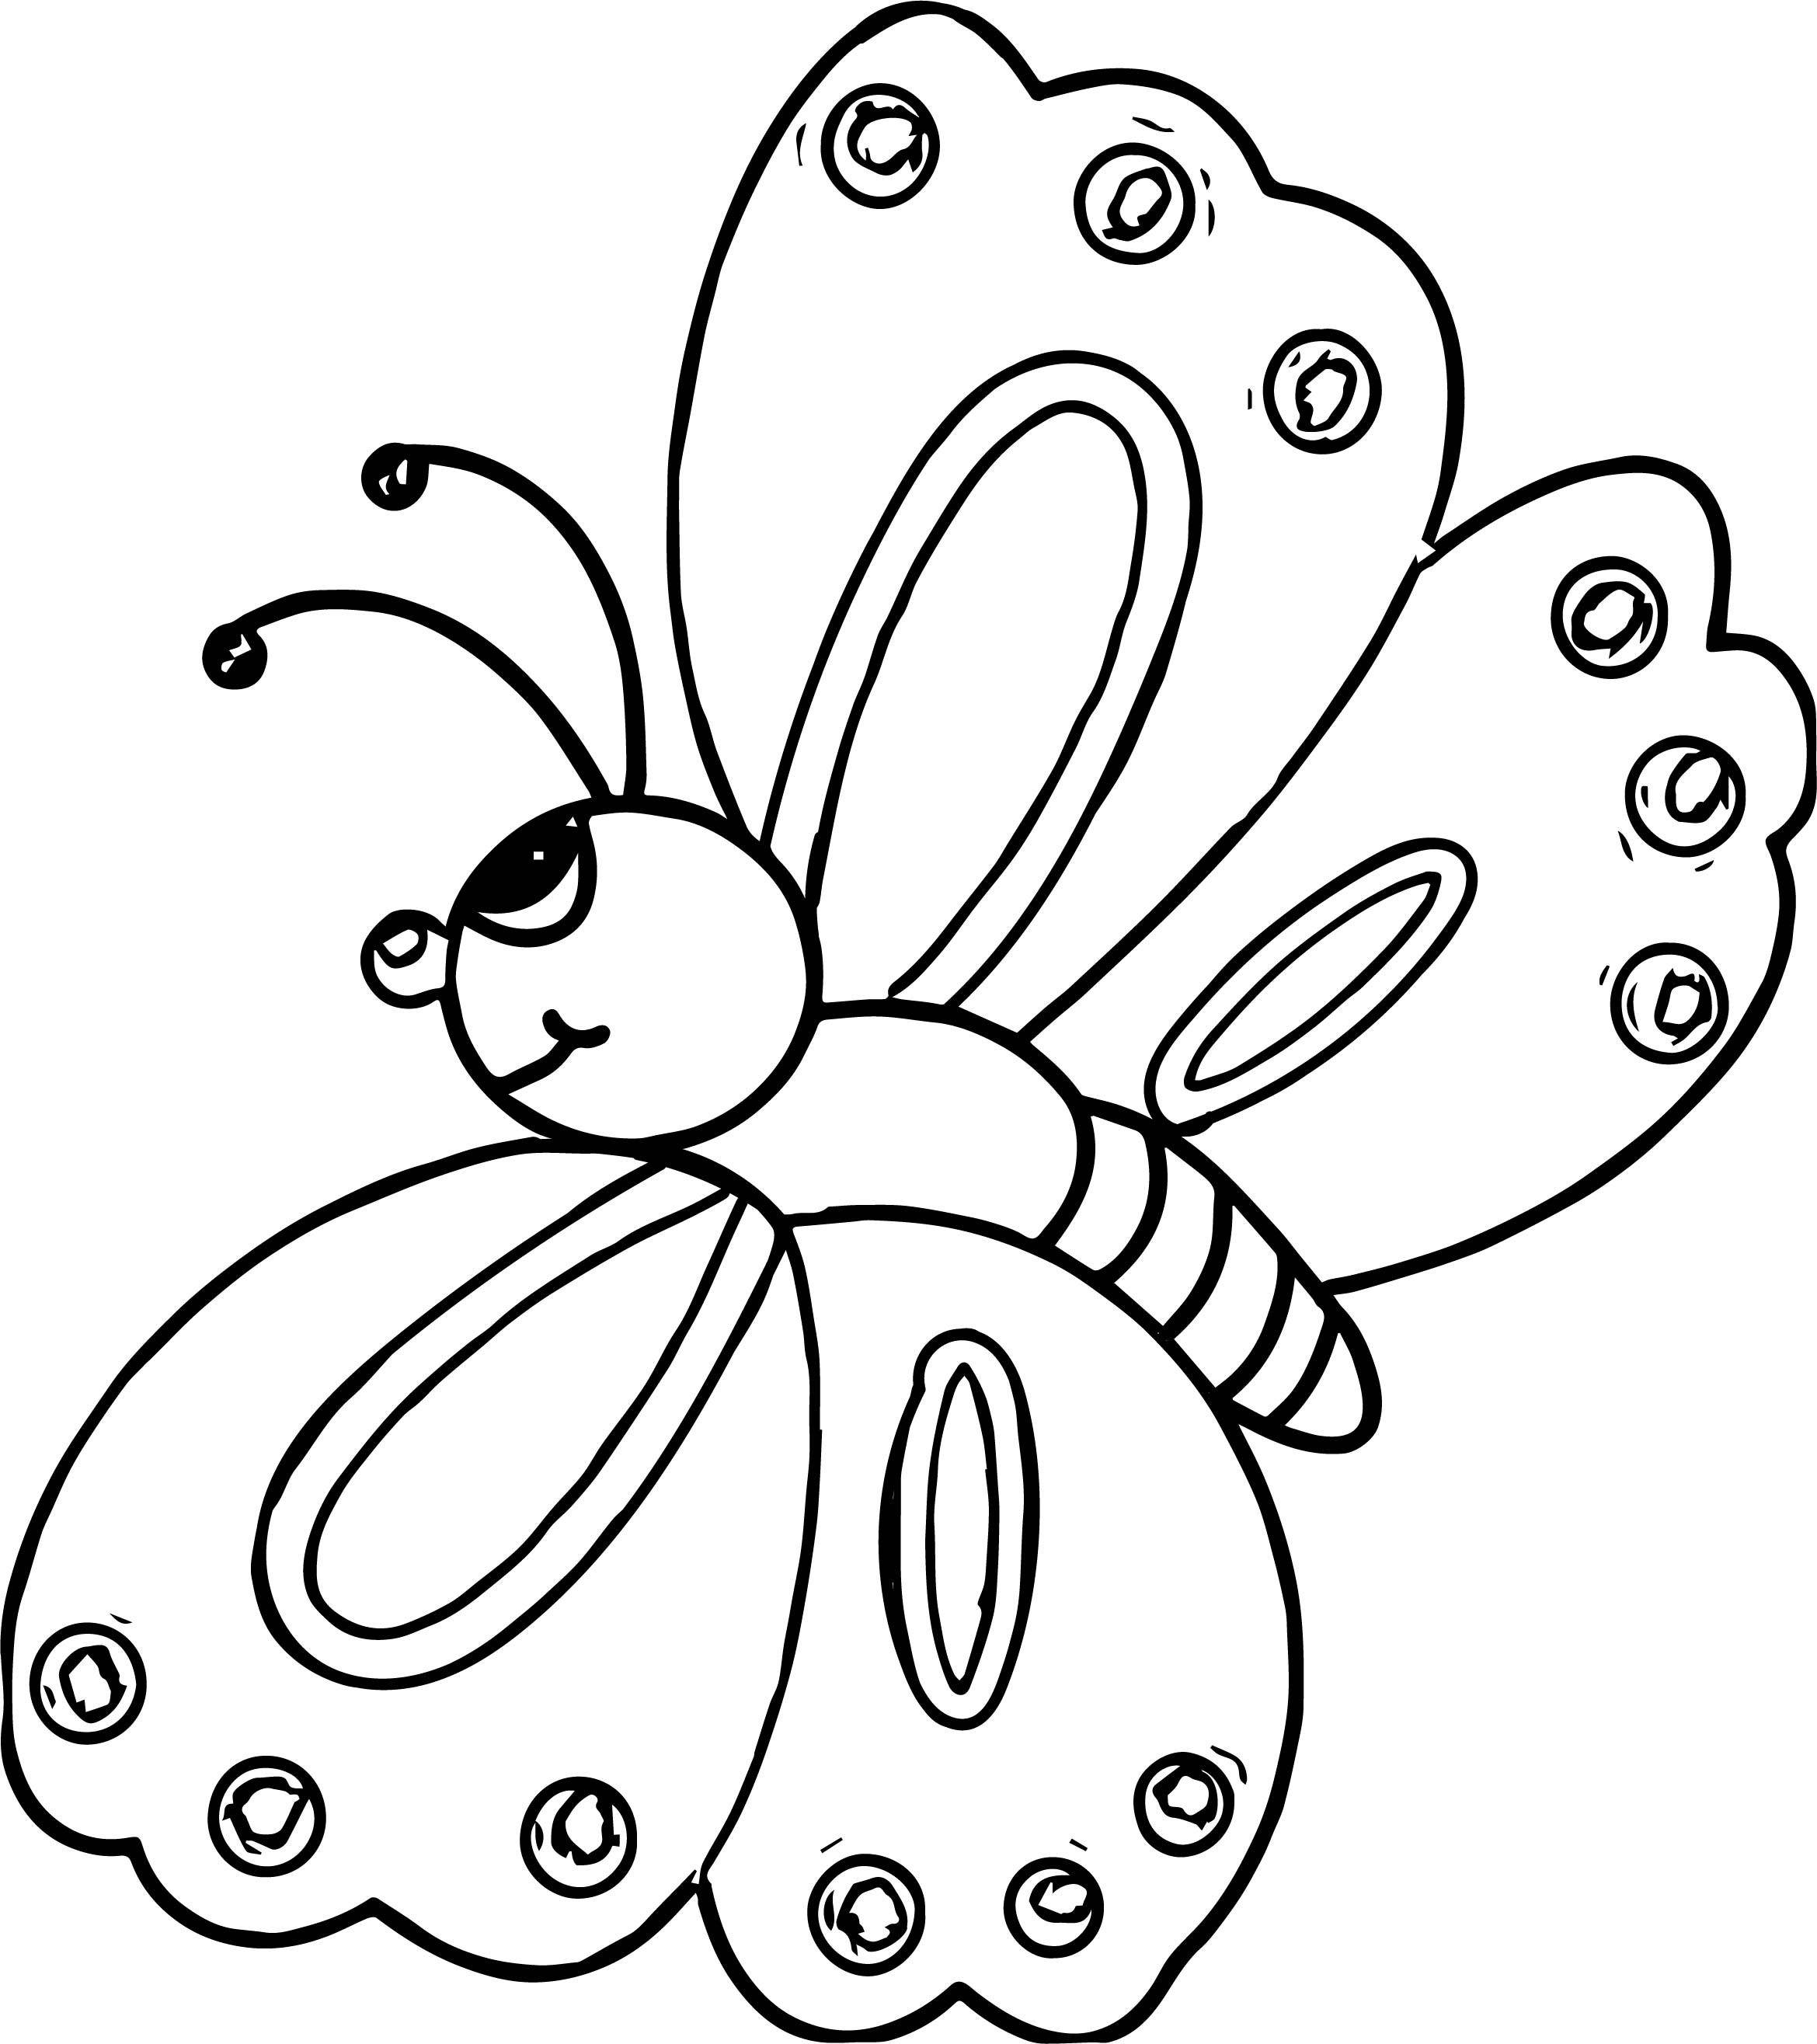 Butterfly Coloring Pages, Learn More About Butterfly Here - StPeteFest.org | 2631x2339